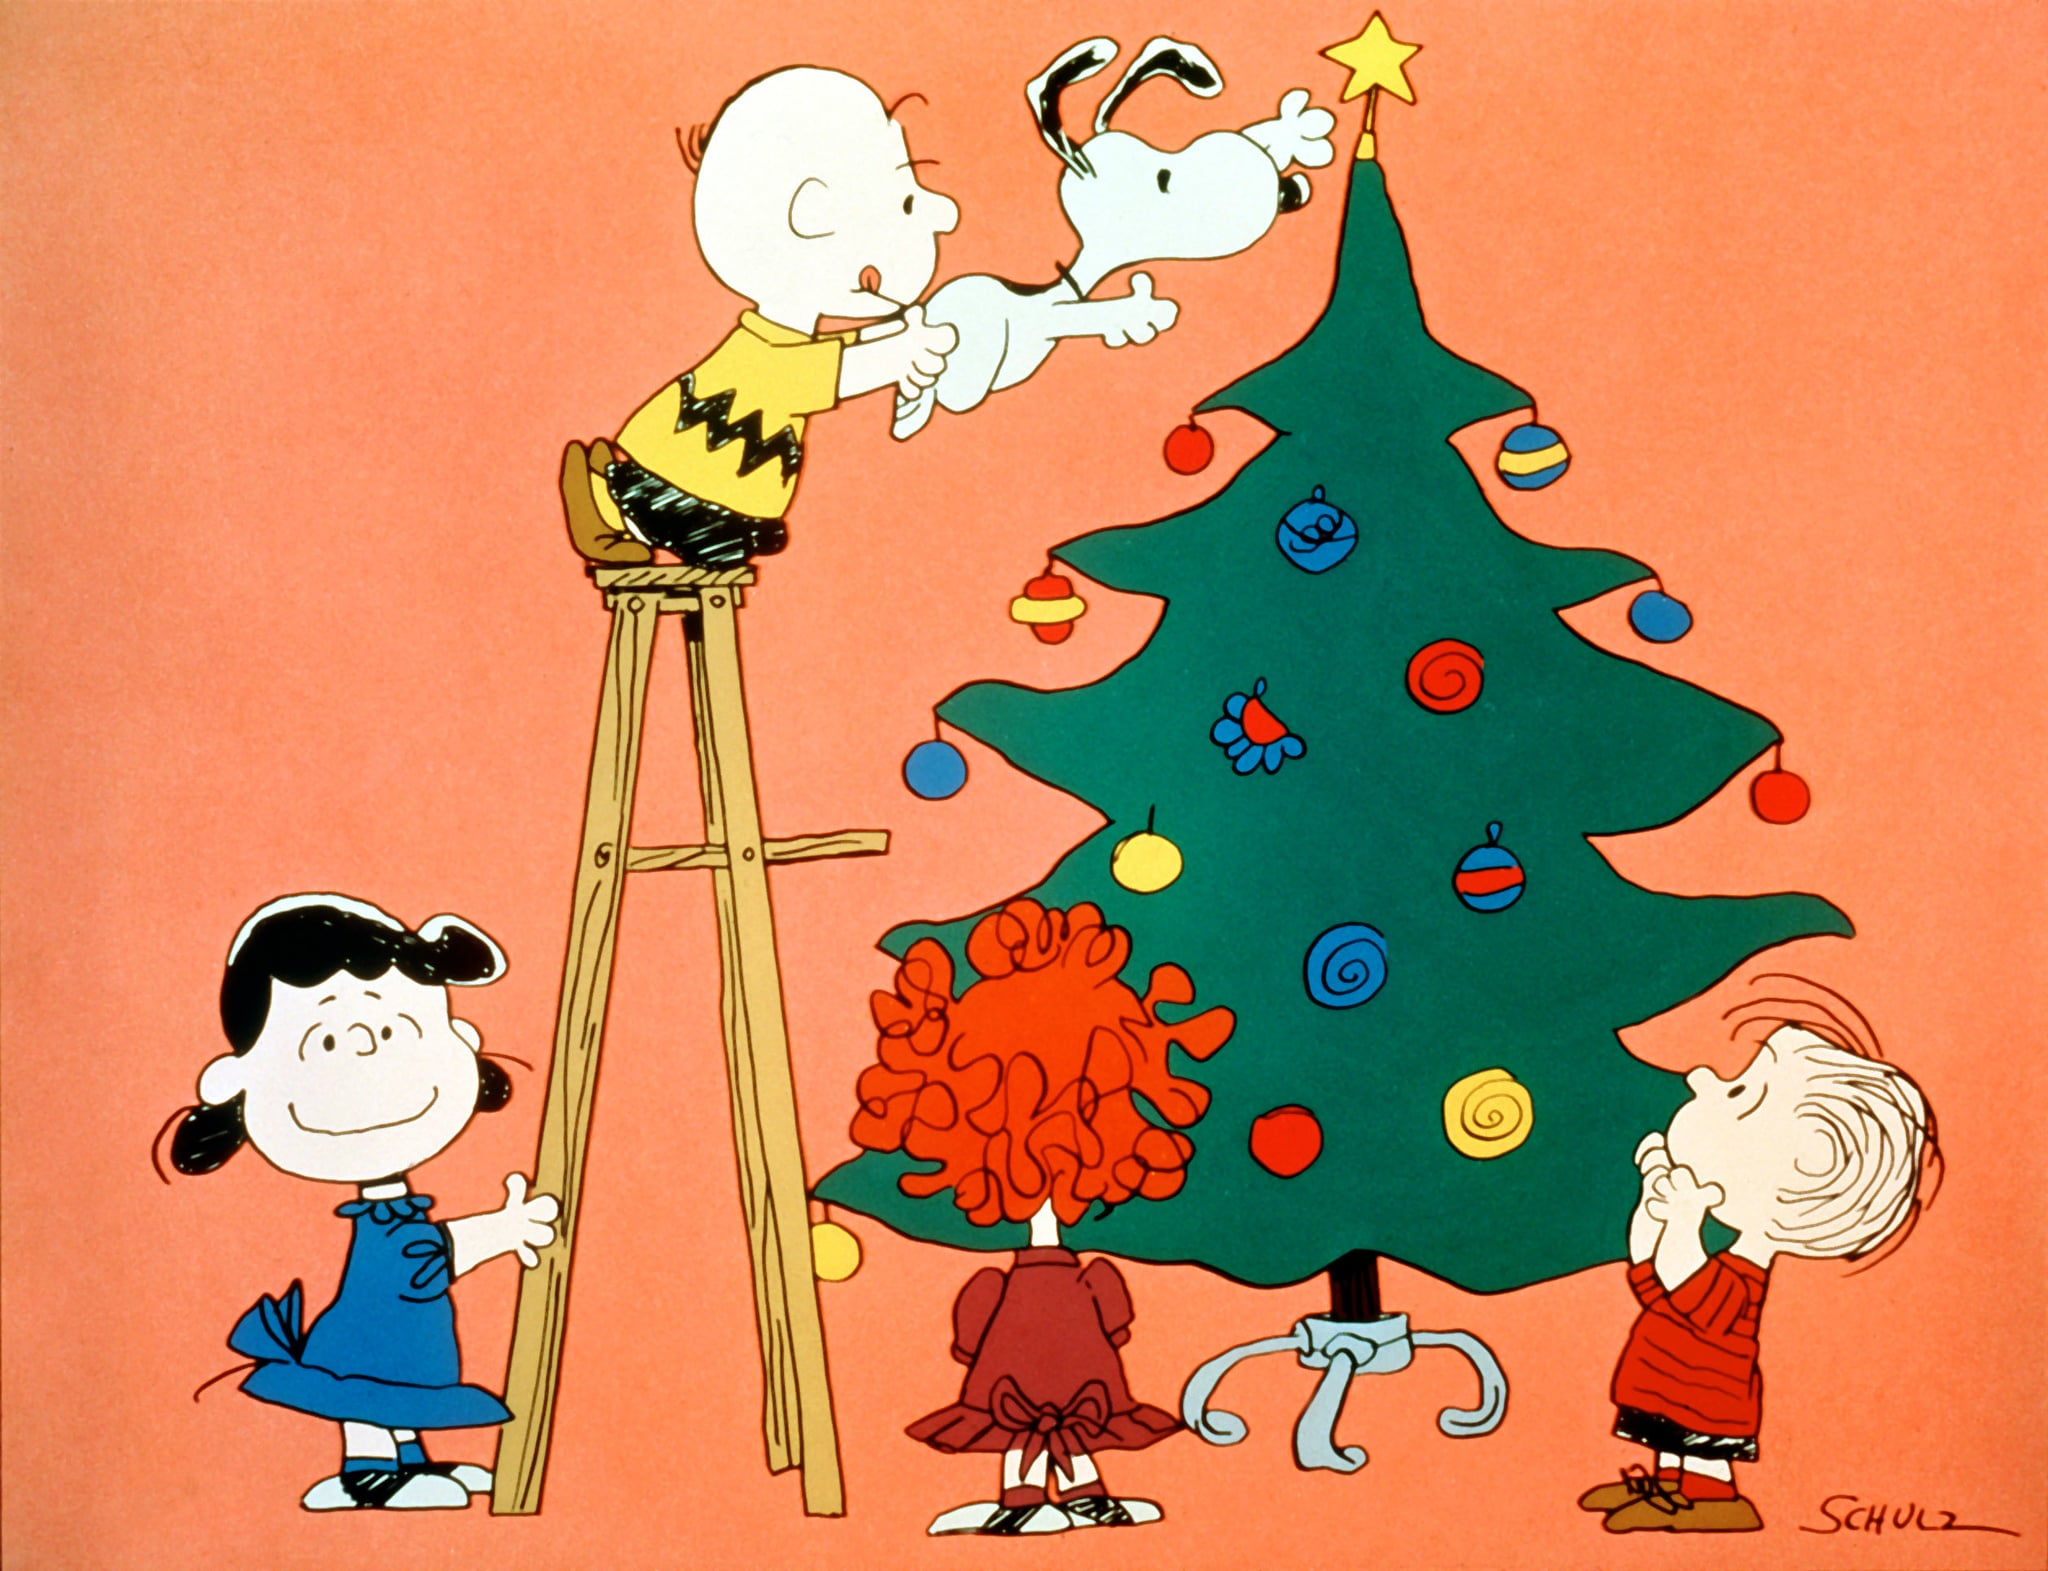 A CHARLIE BROWN CHRISTMAS, Lucy, Charlie Brown, Snoopy, Frieda, Linus, 1965